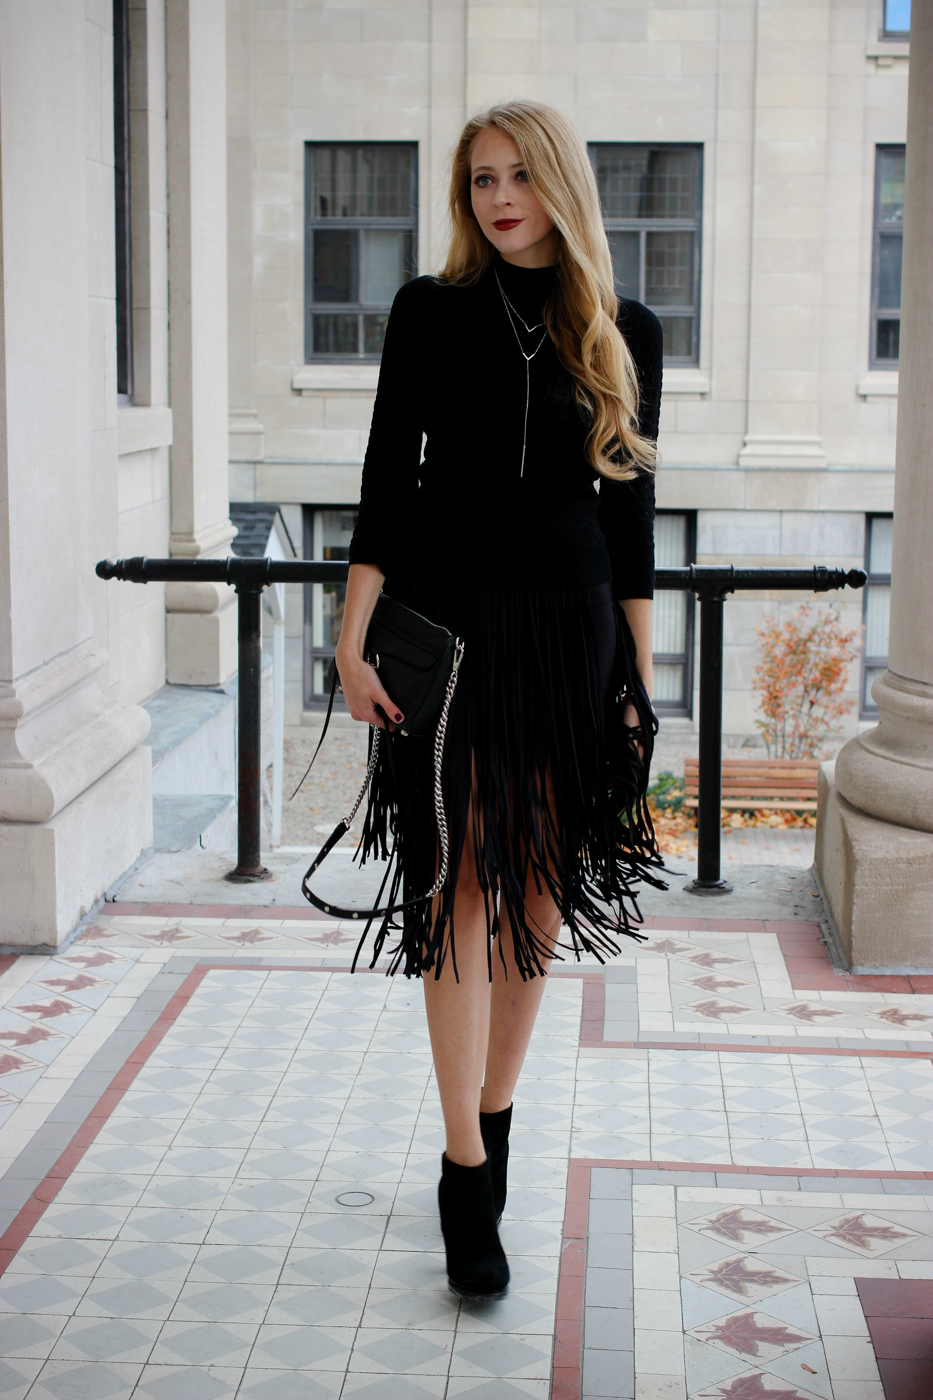 zara fringe skirt (7 of 10)